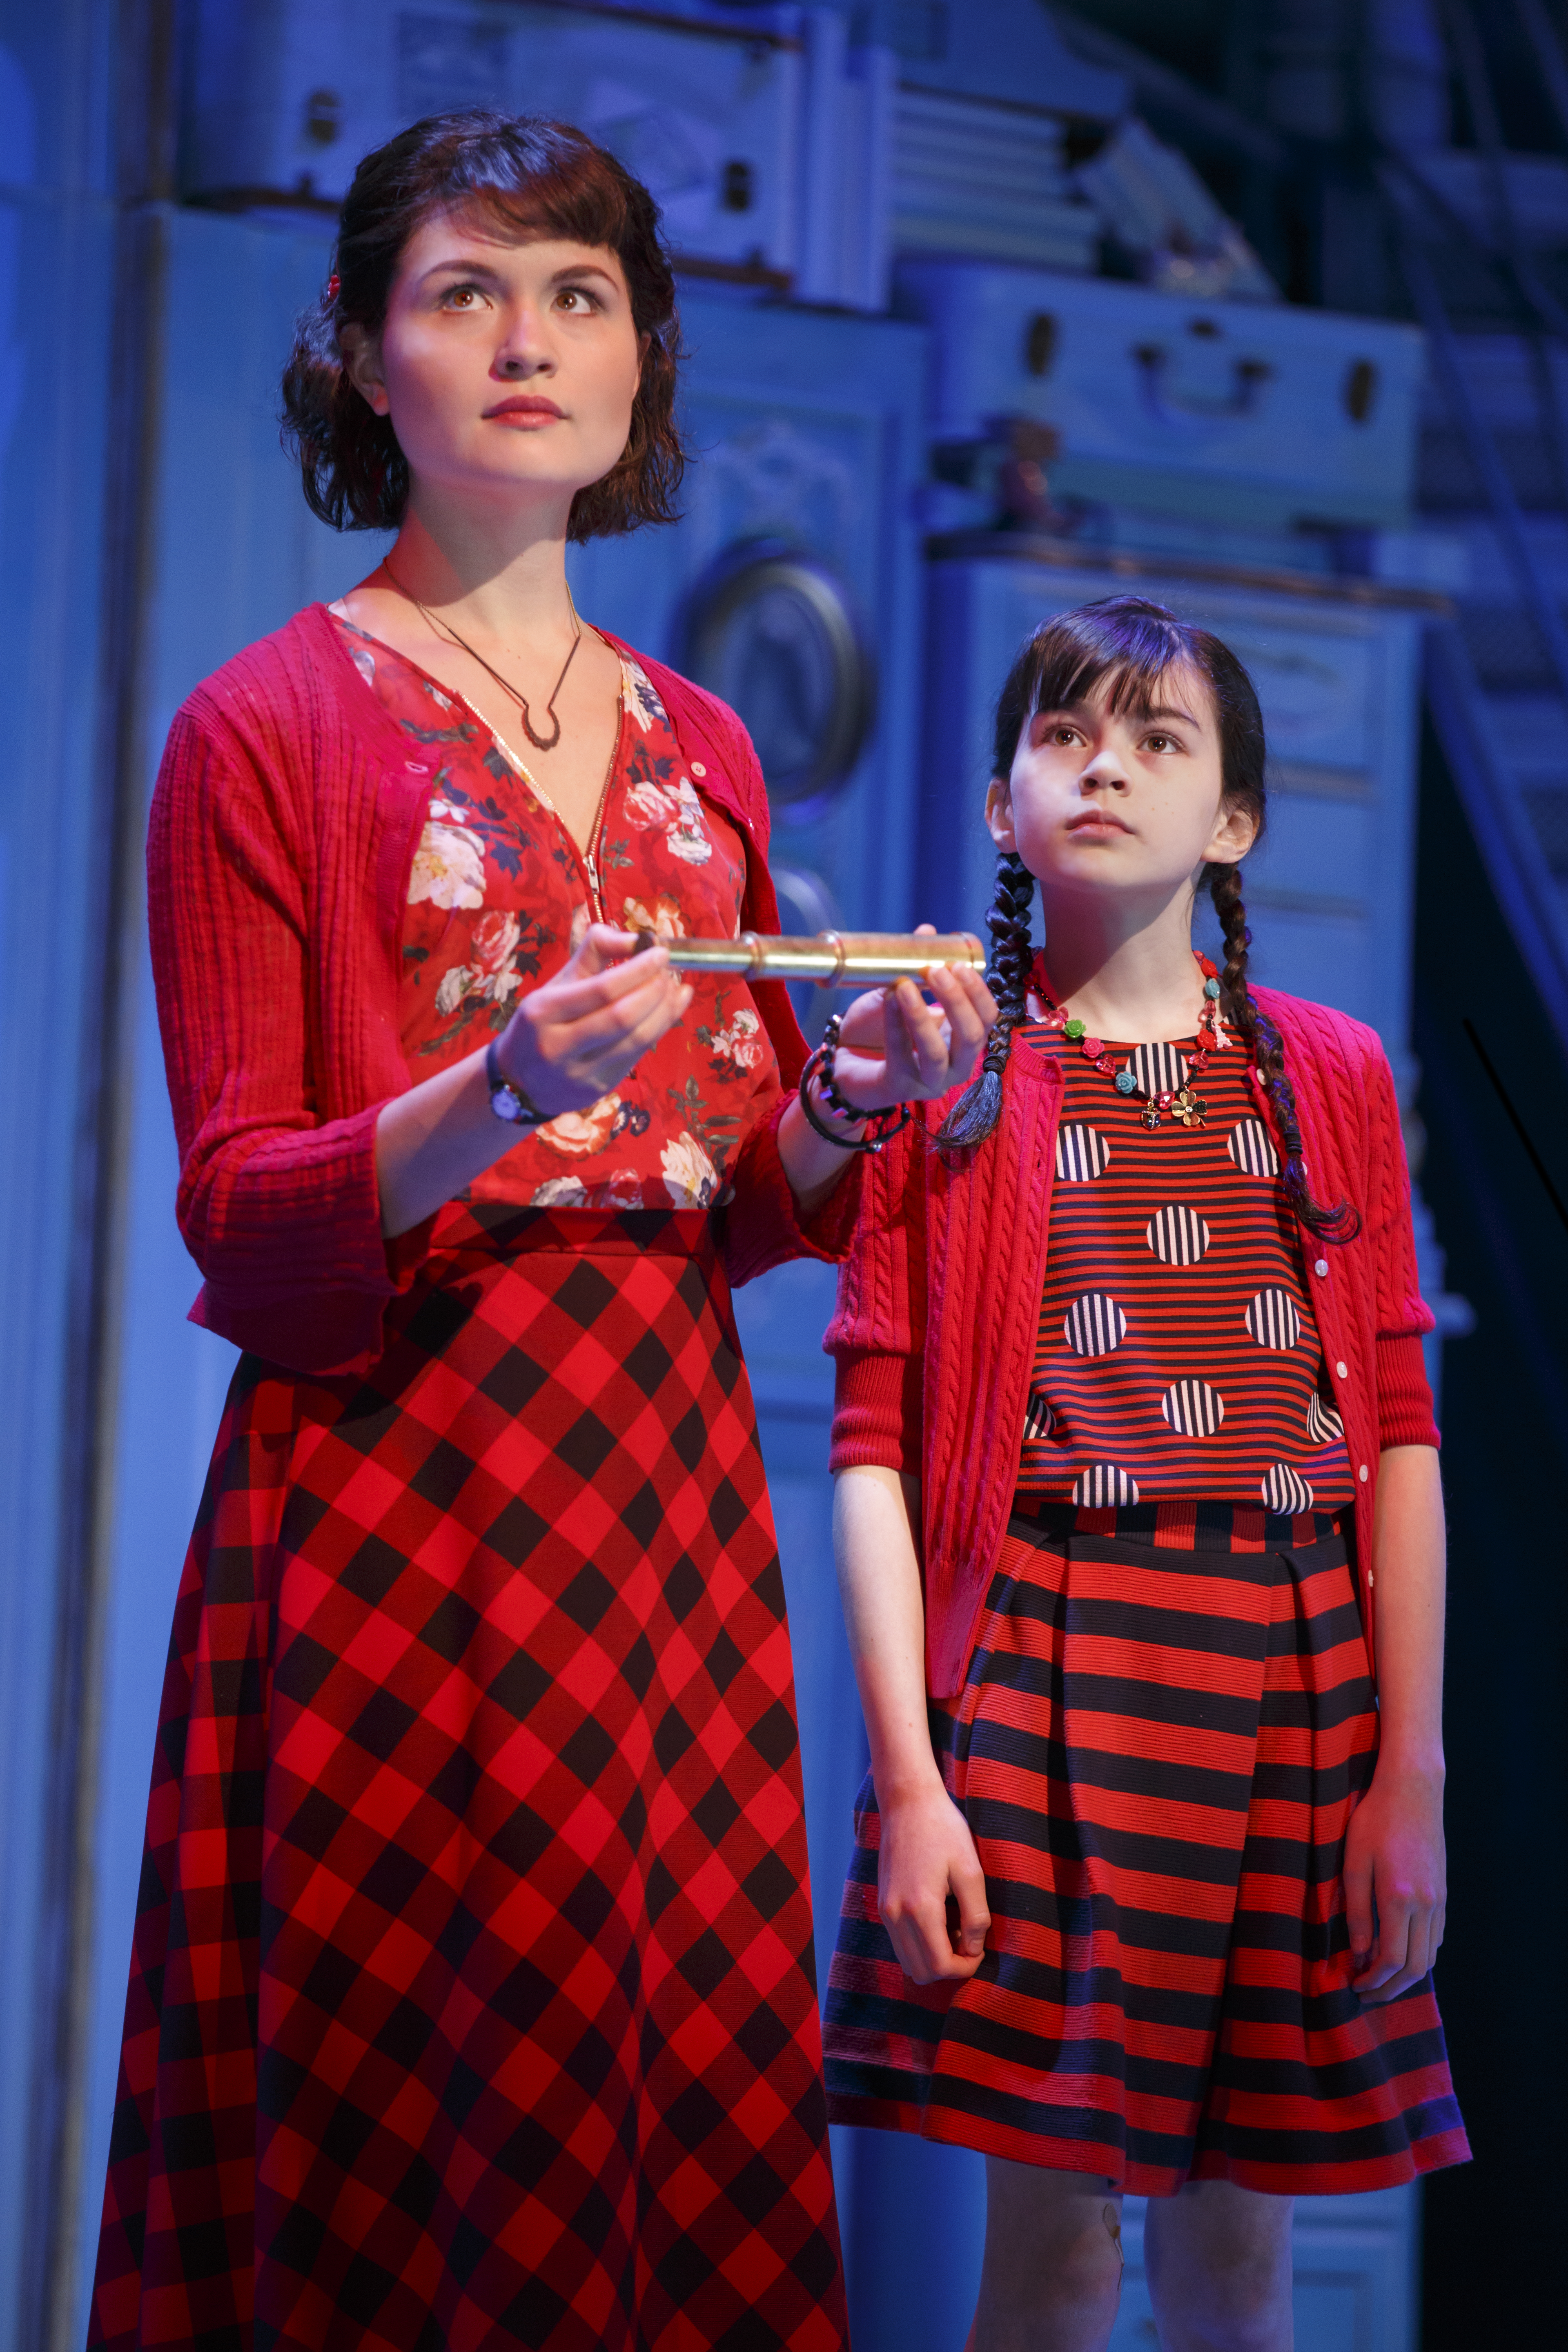 Amélie on Broadway: New Musical for Dreamers